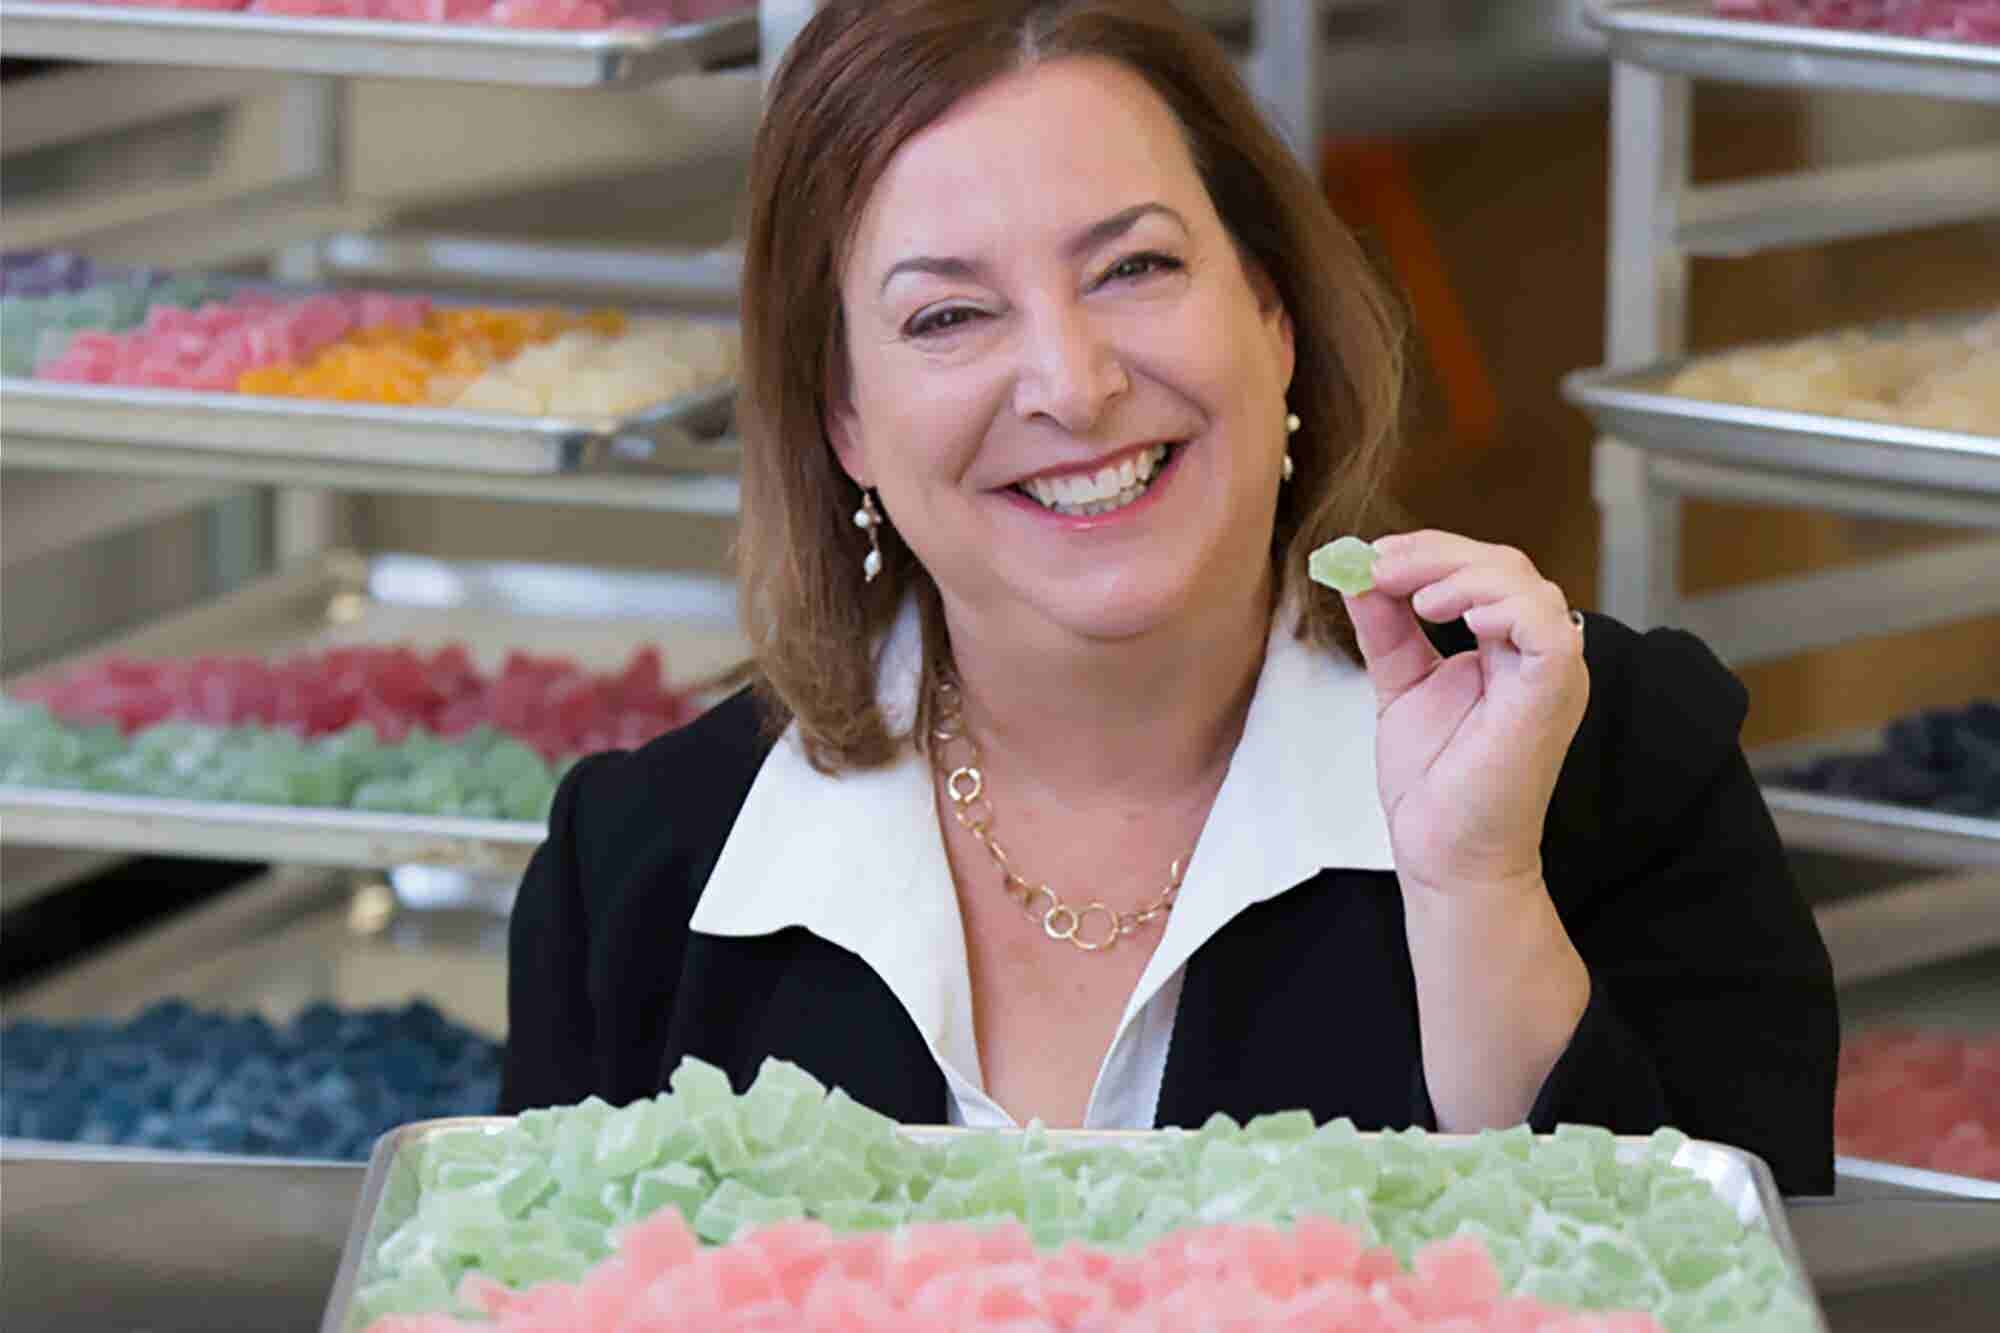 Meet the Martha Stewart of Edibles